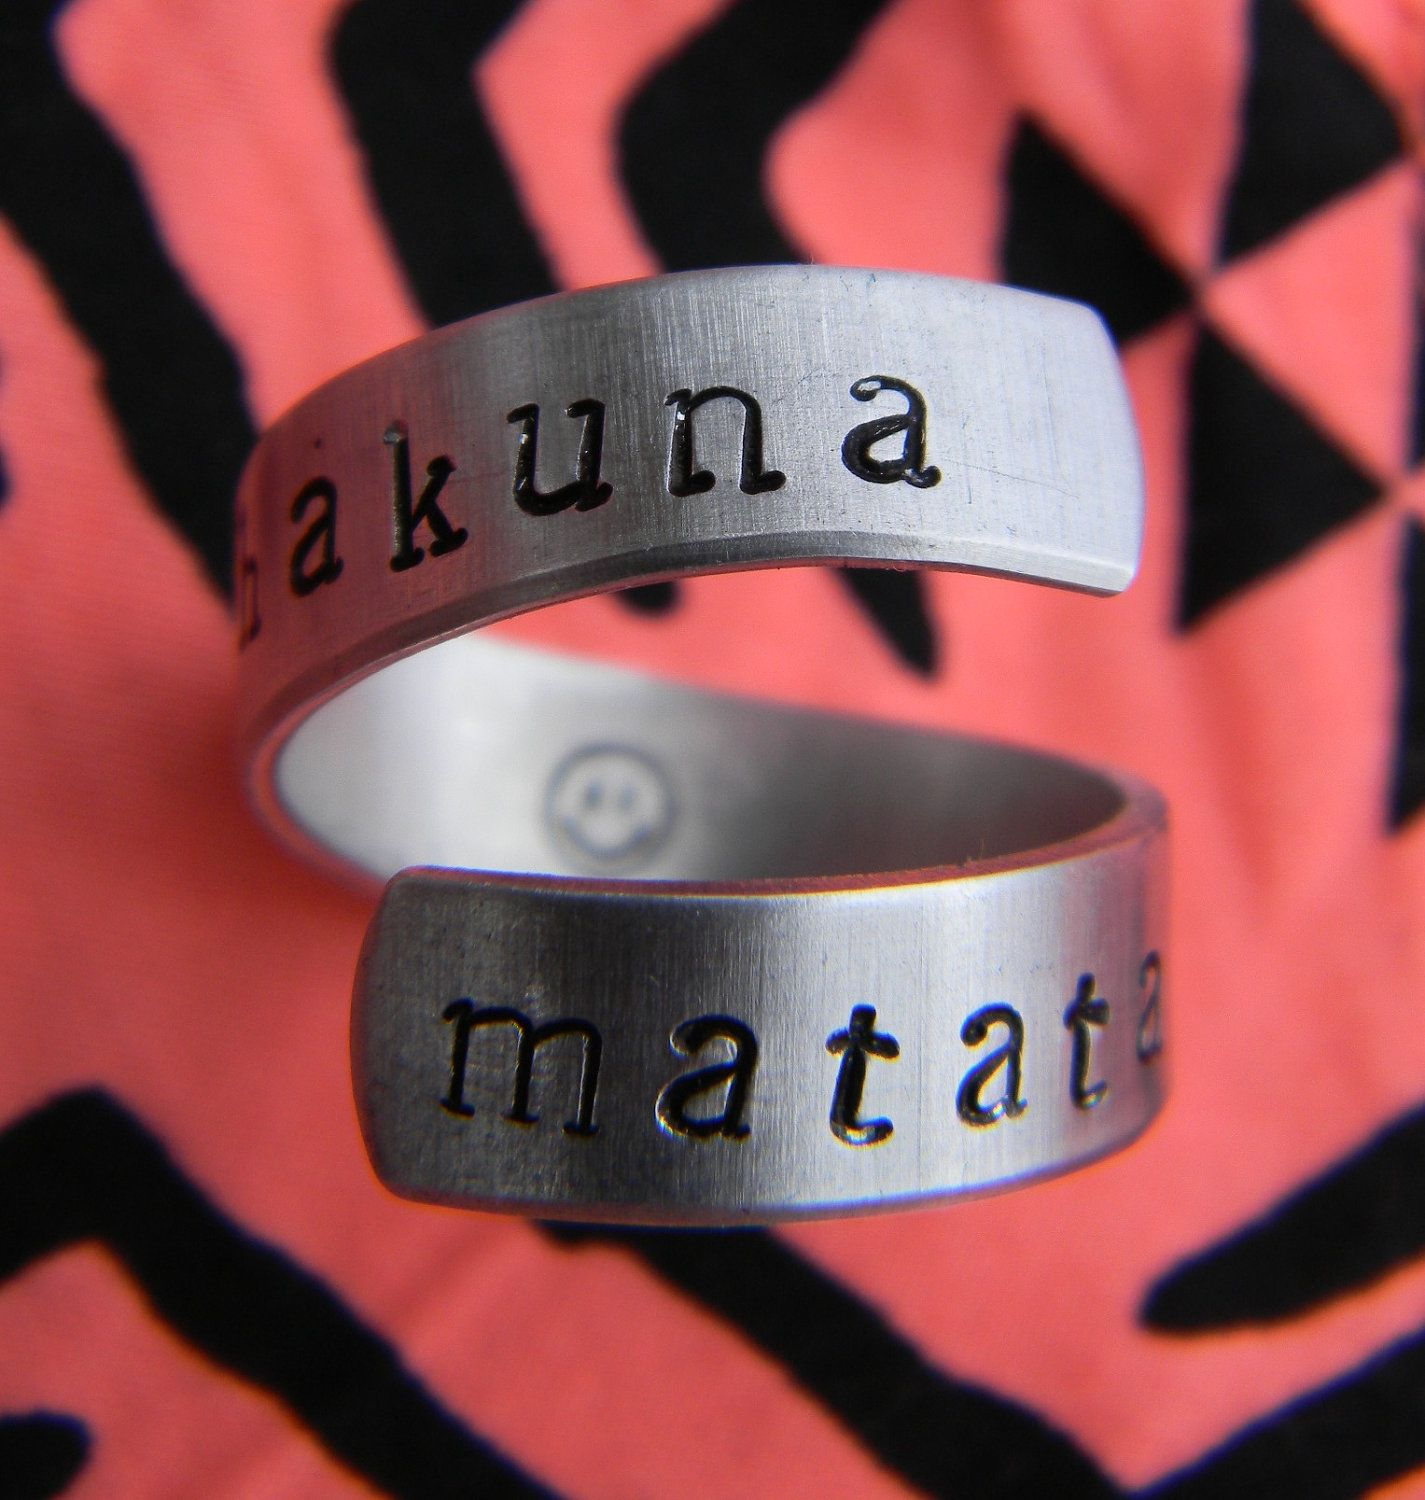 Hakuna Matata ring! Want one sooo bad!